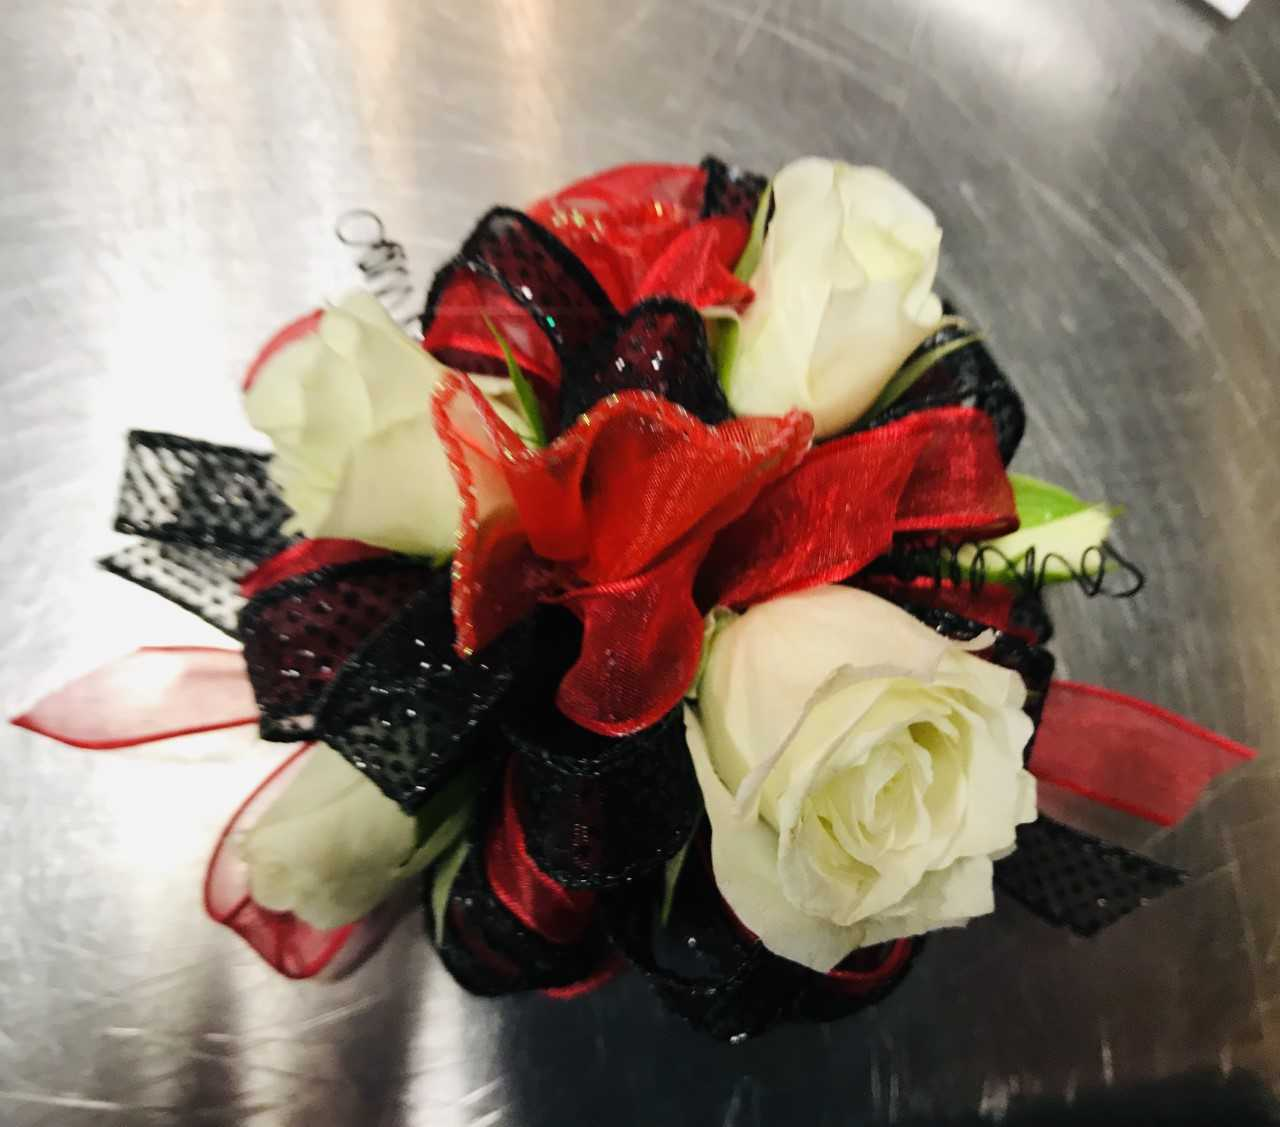 Large Wrist Corsage - White Rose w/ Red & Black